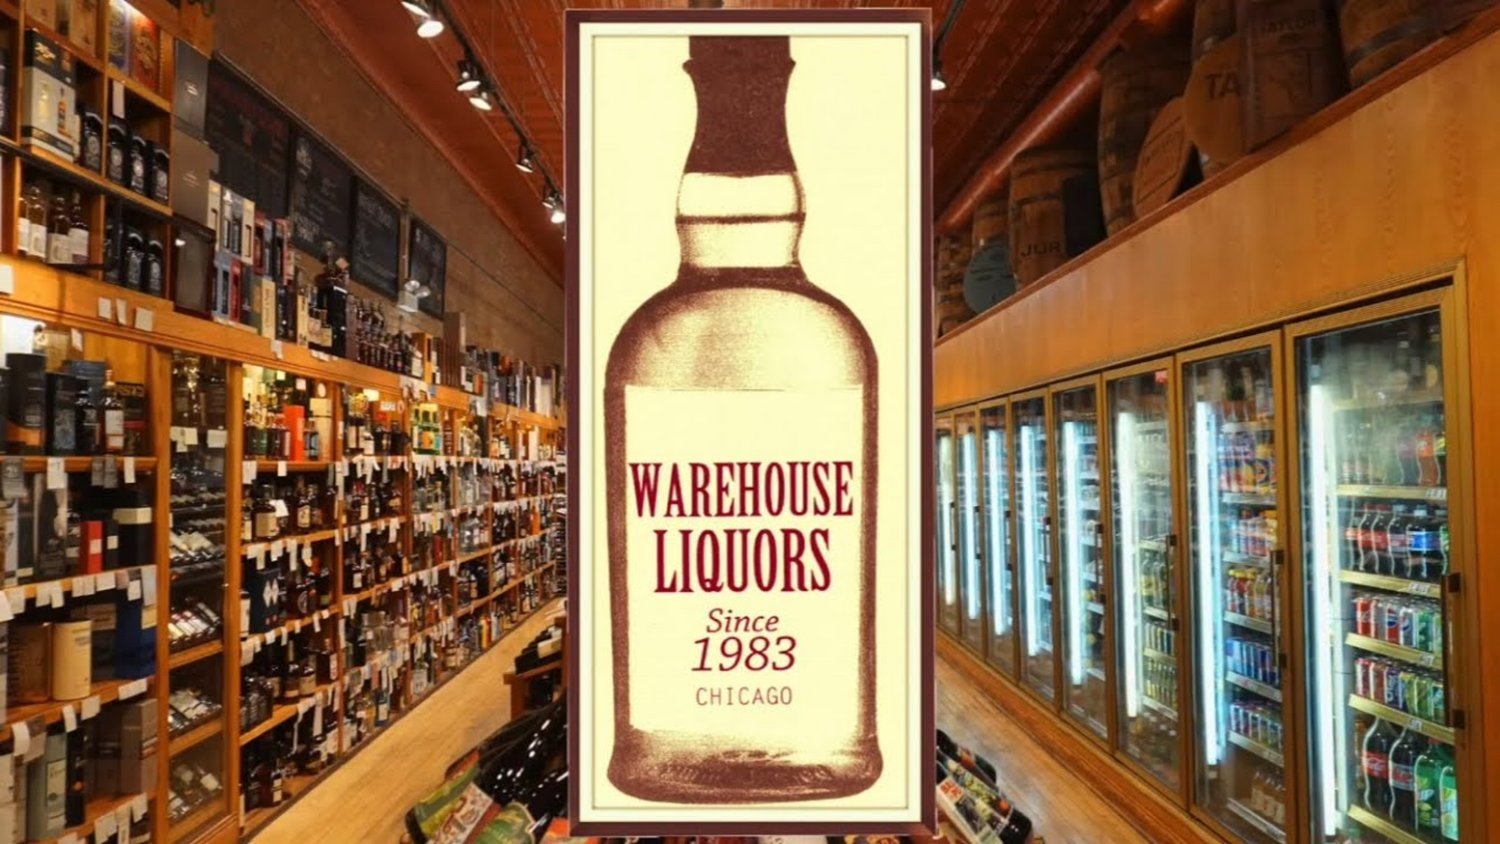 Warehouse Liquors